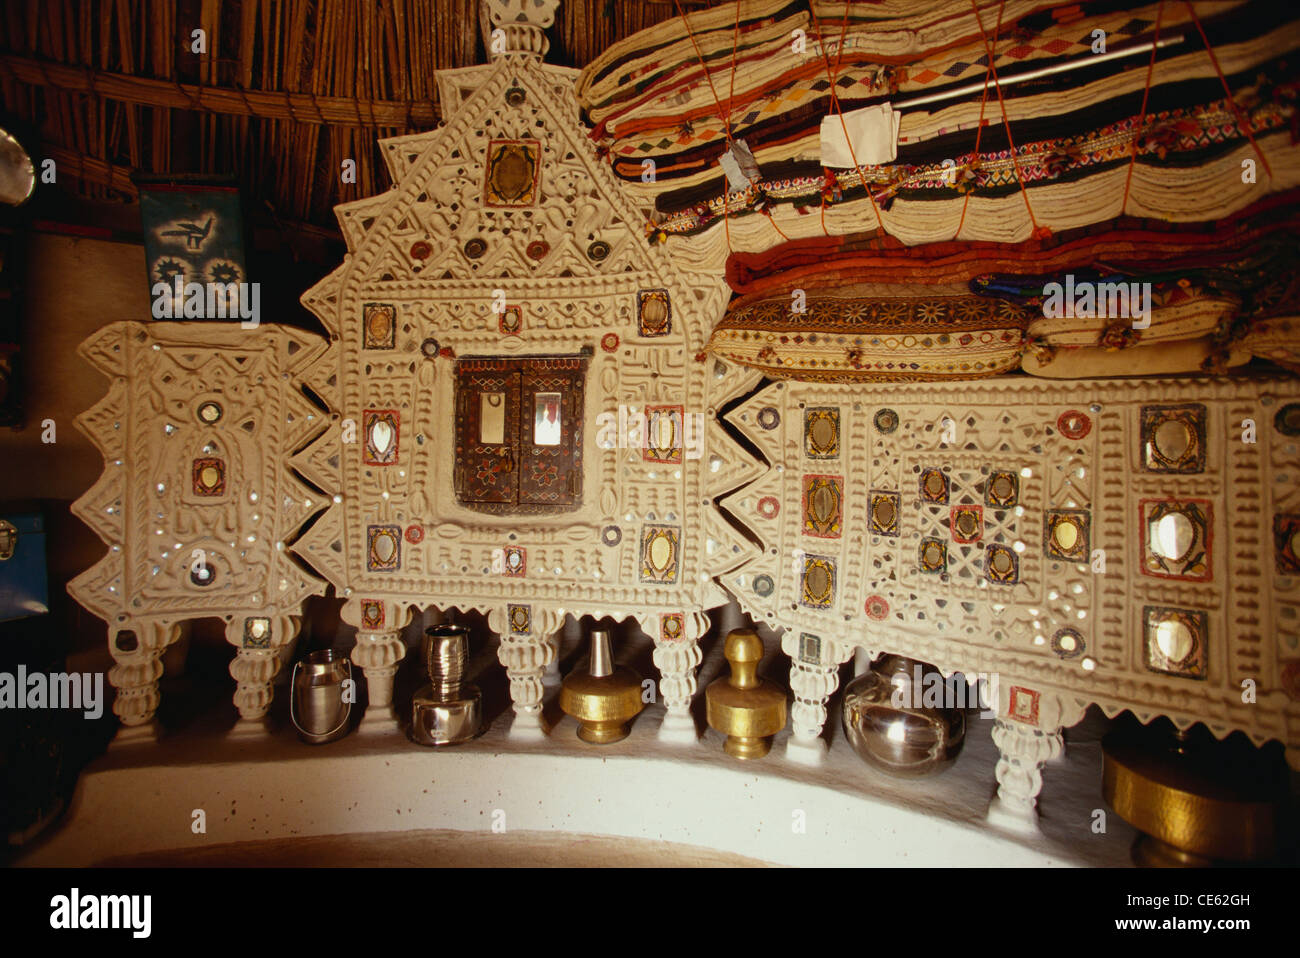 Rabari House Interior Utensils Mirror Handicrafts Wall